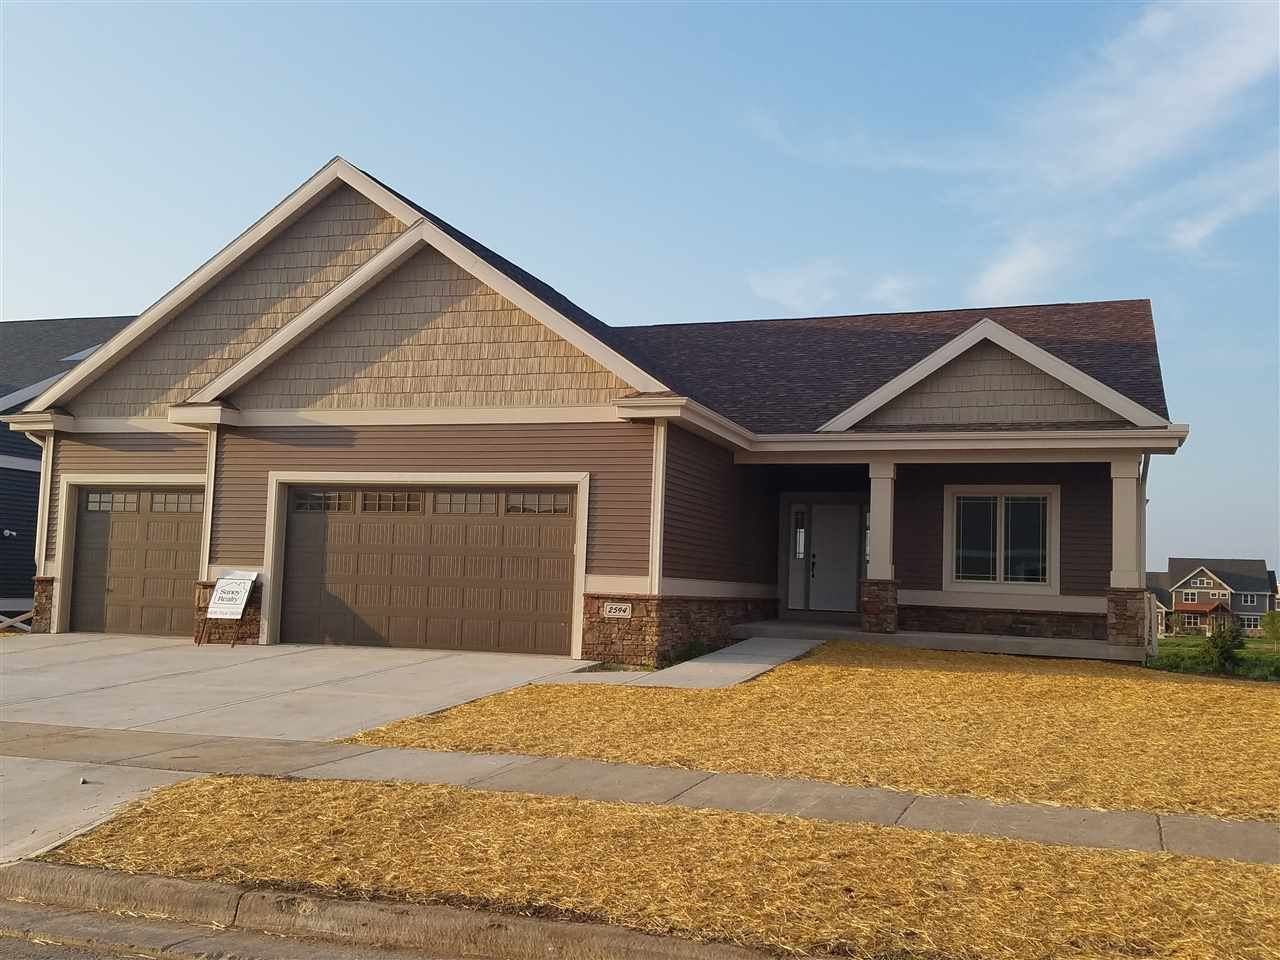 825 Steven View, Waunakee, WI 53597-123 - #: 1905241